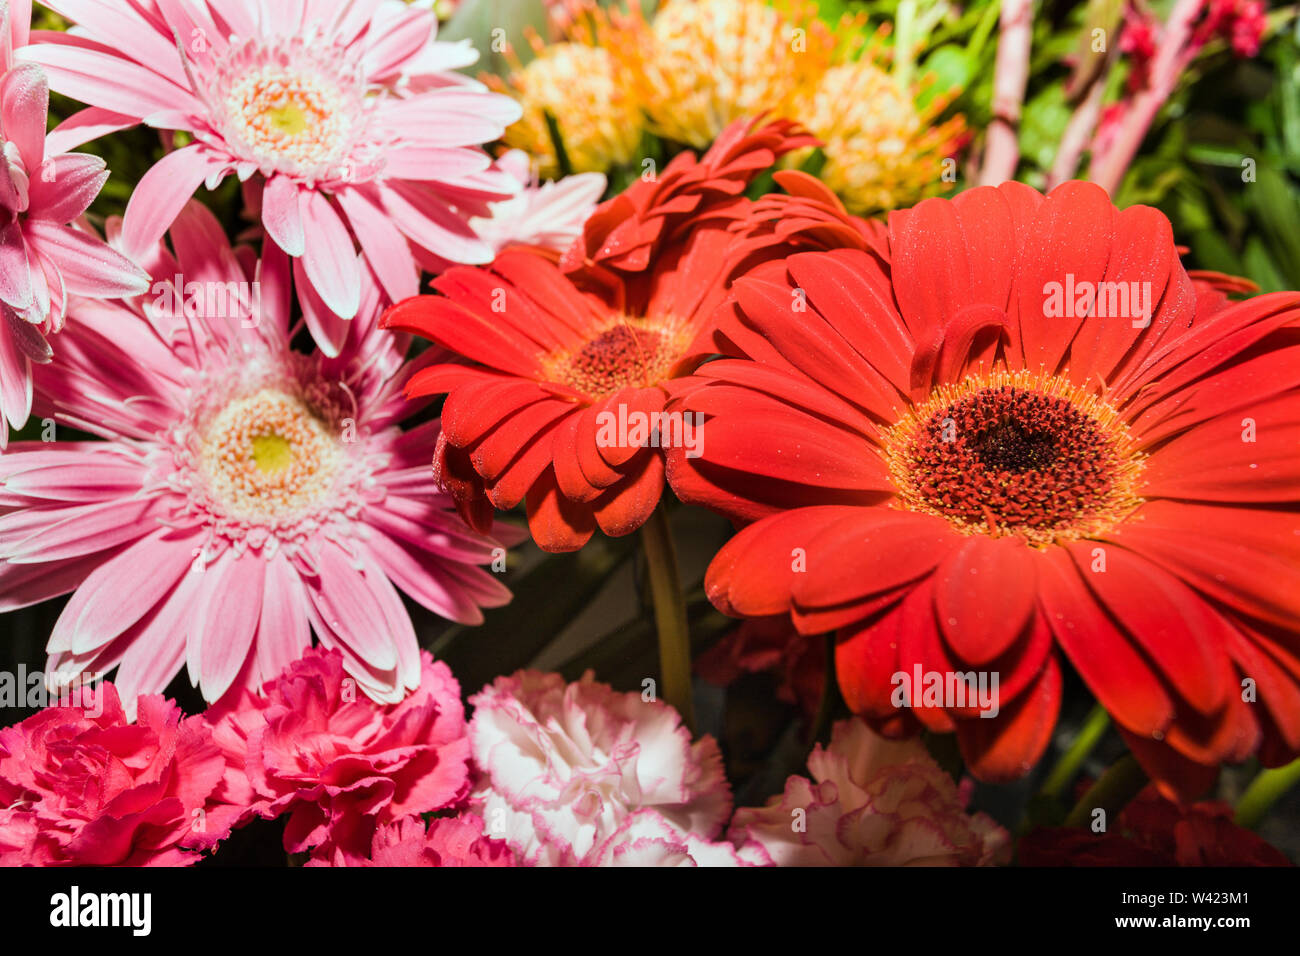 Red and pink gerbera and little carnations in a same bunch of flowers in a gift shop - Stock Image